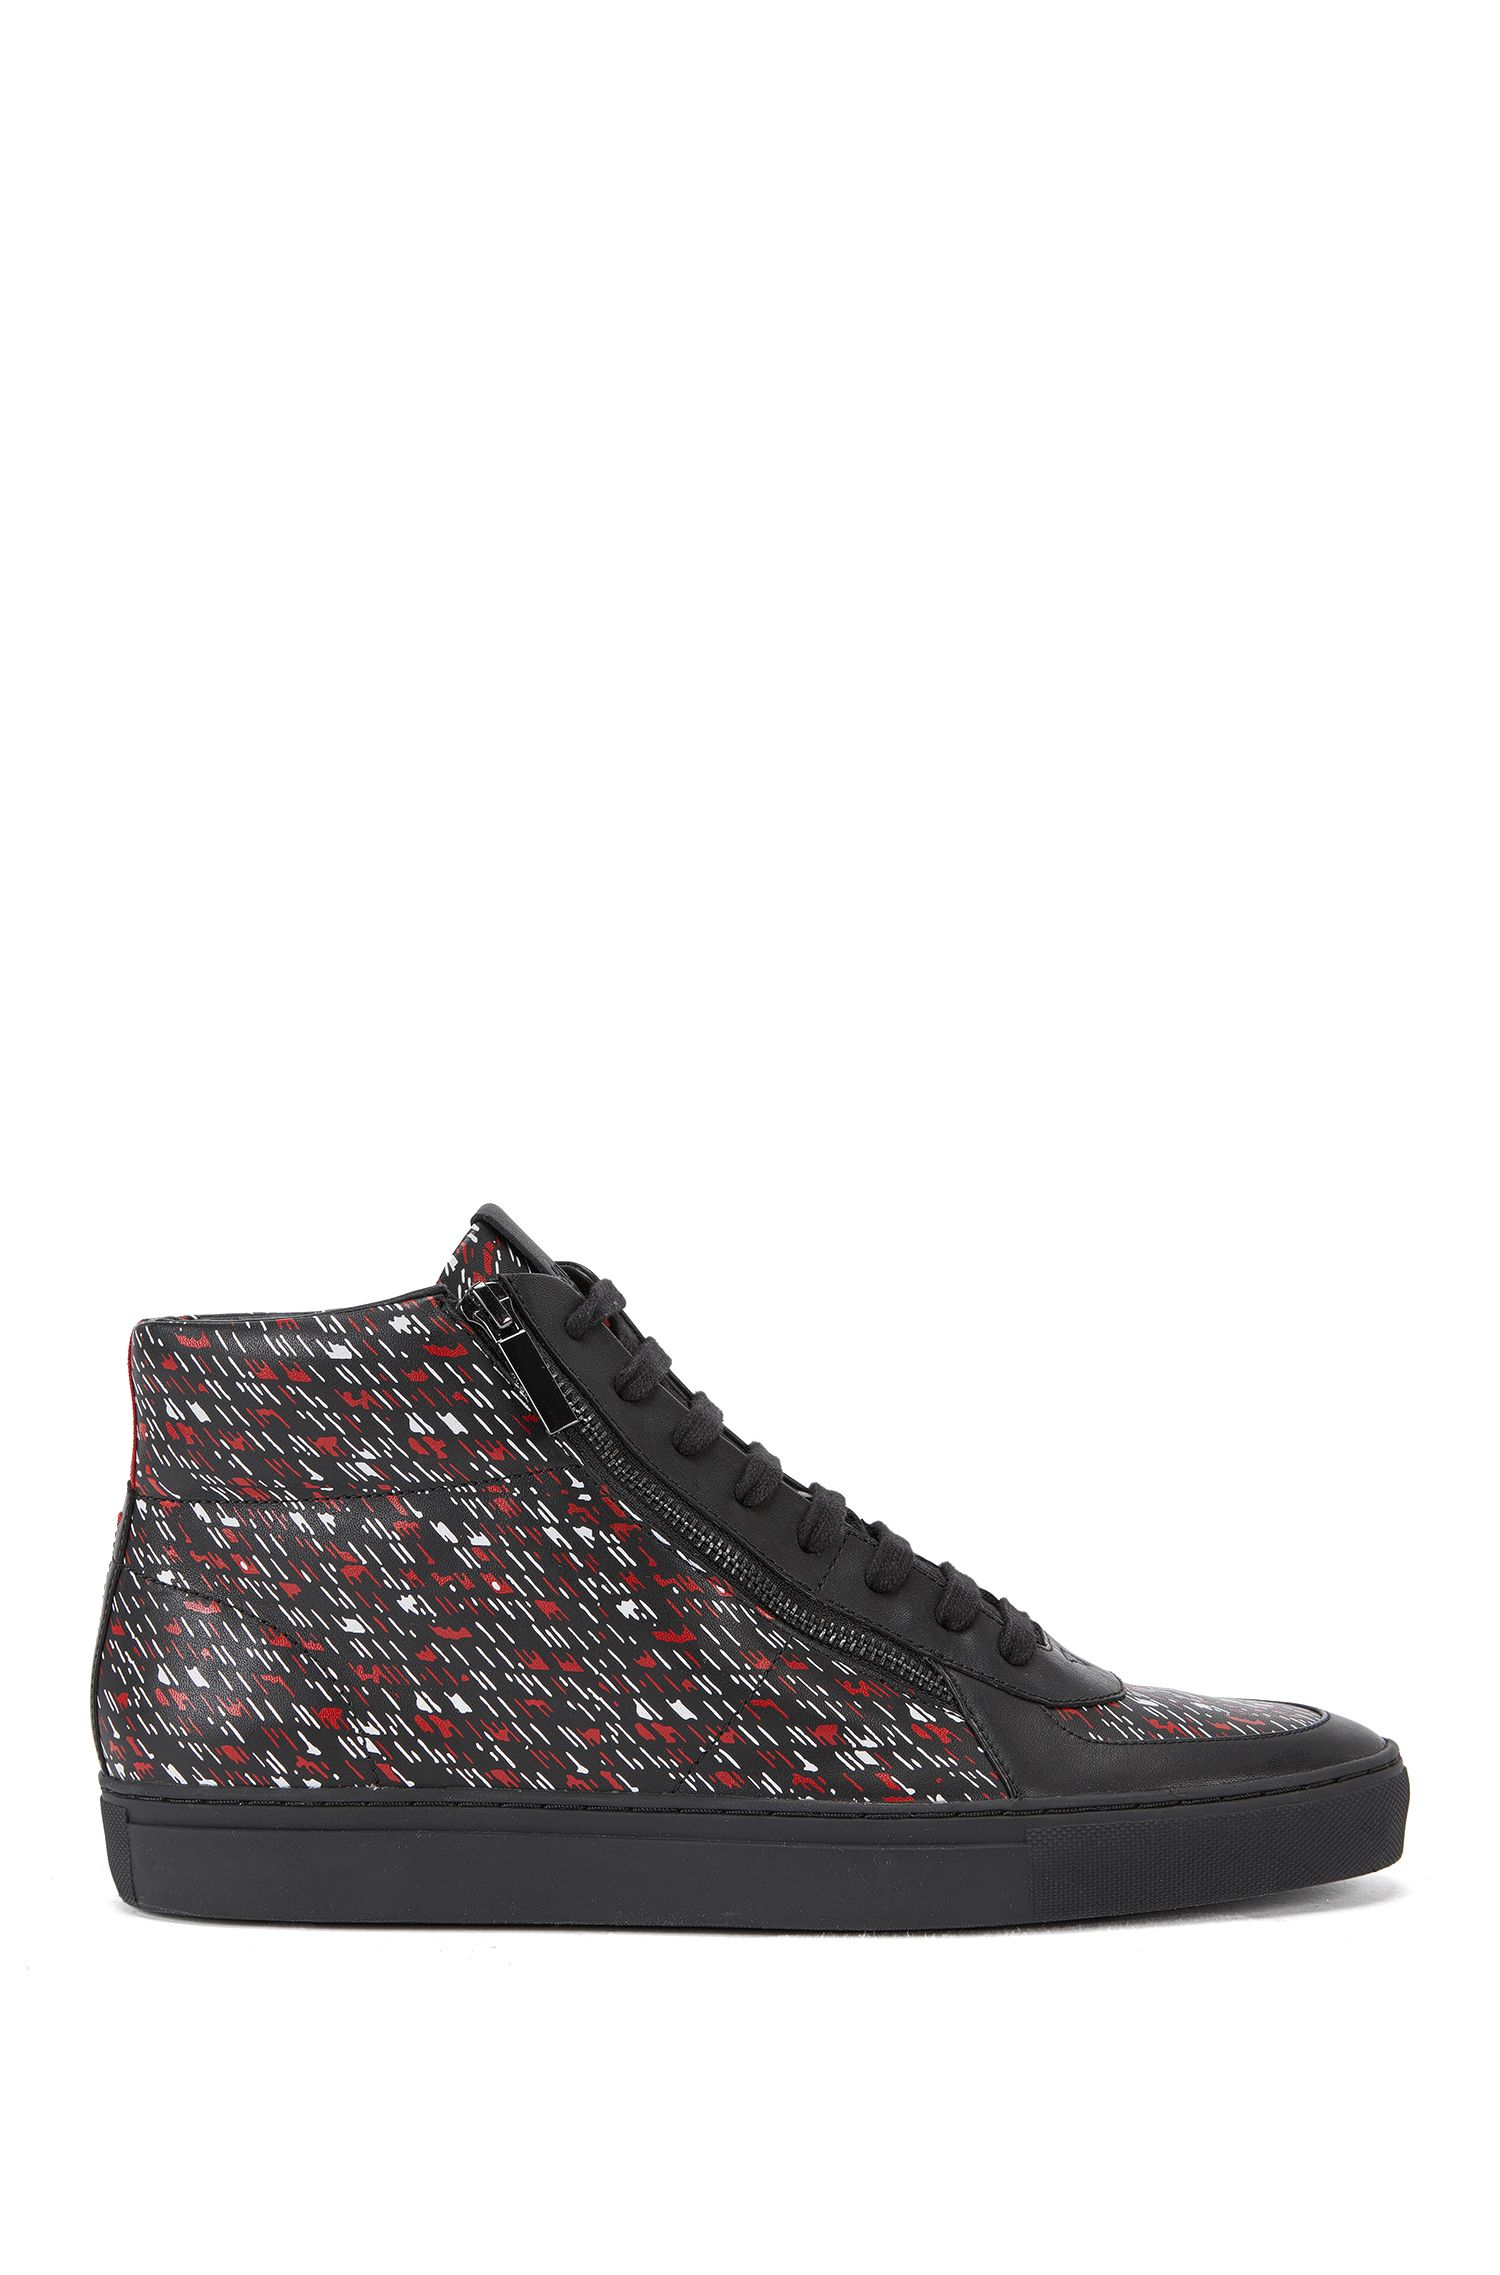 Sneakers high-top in pelle con stampa grafica